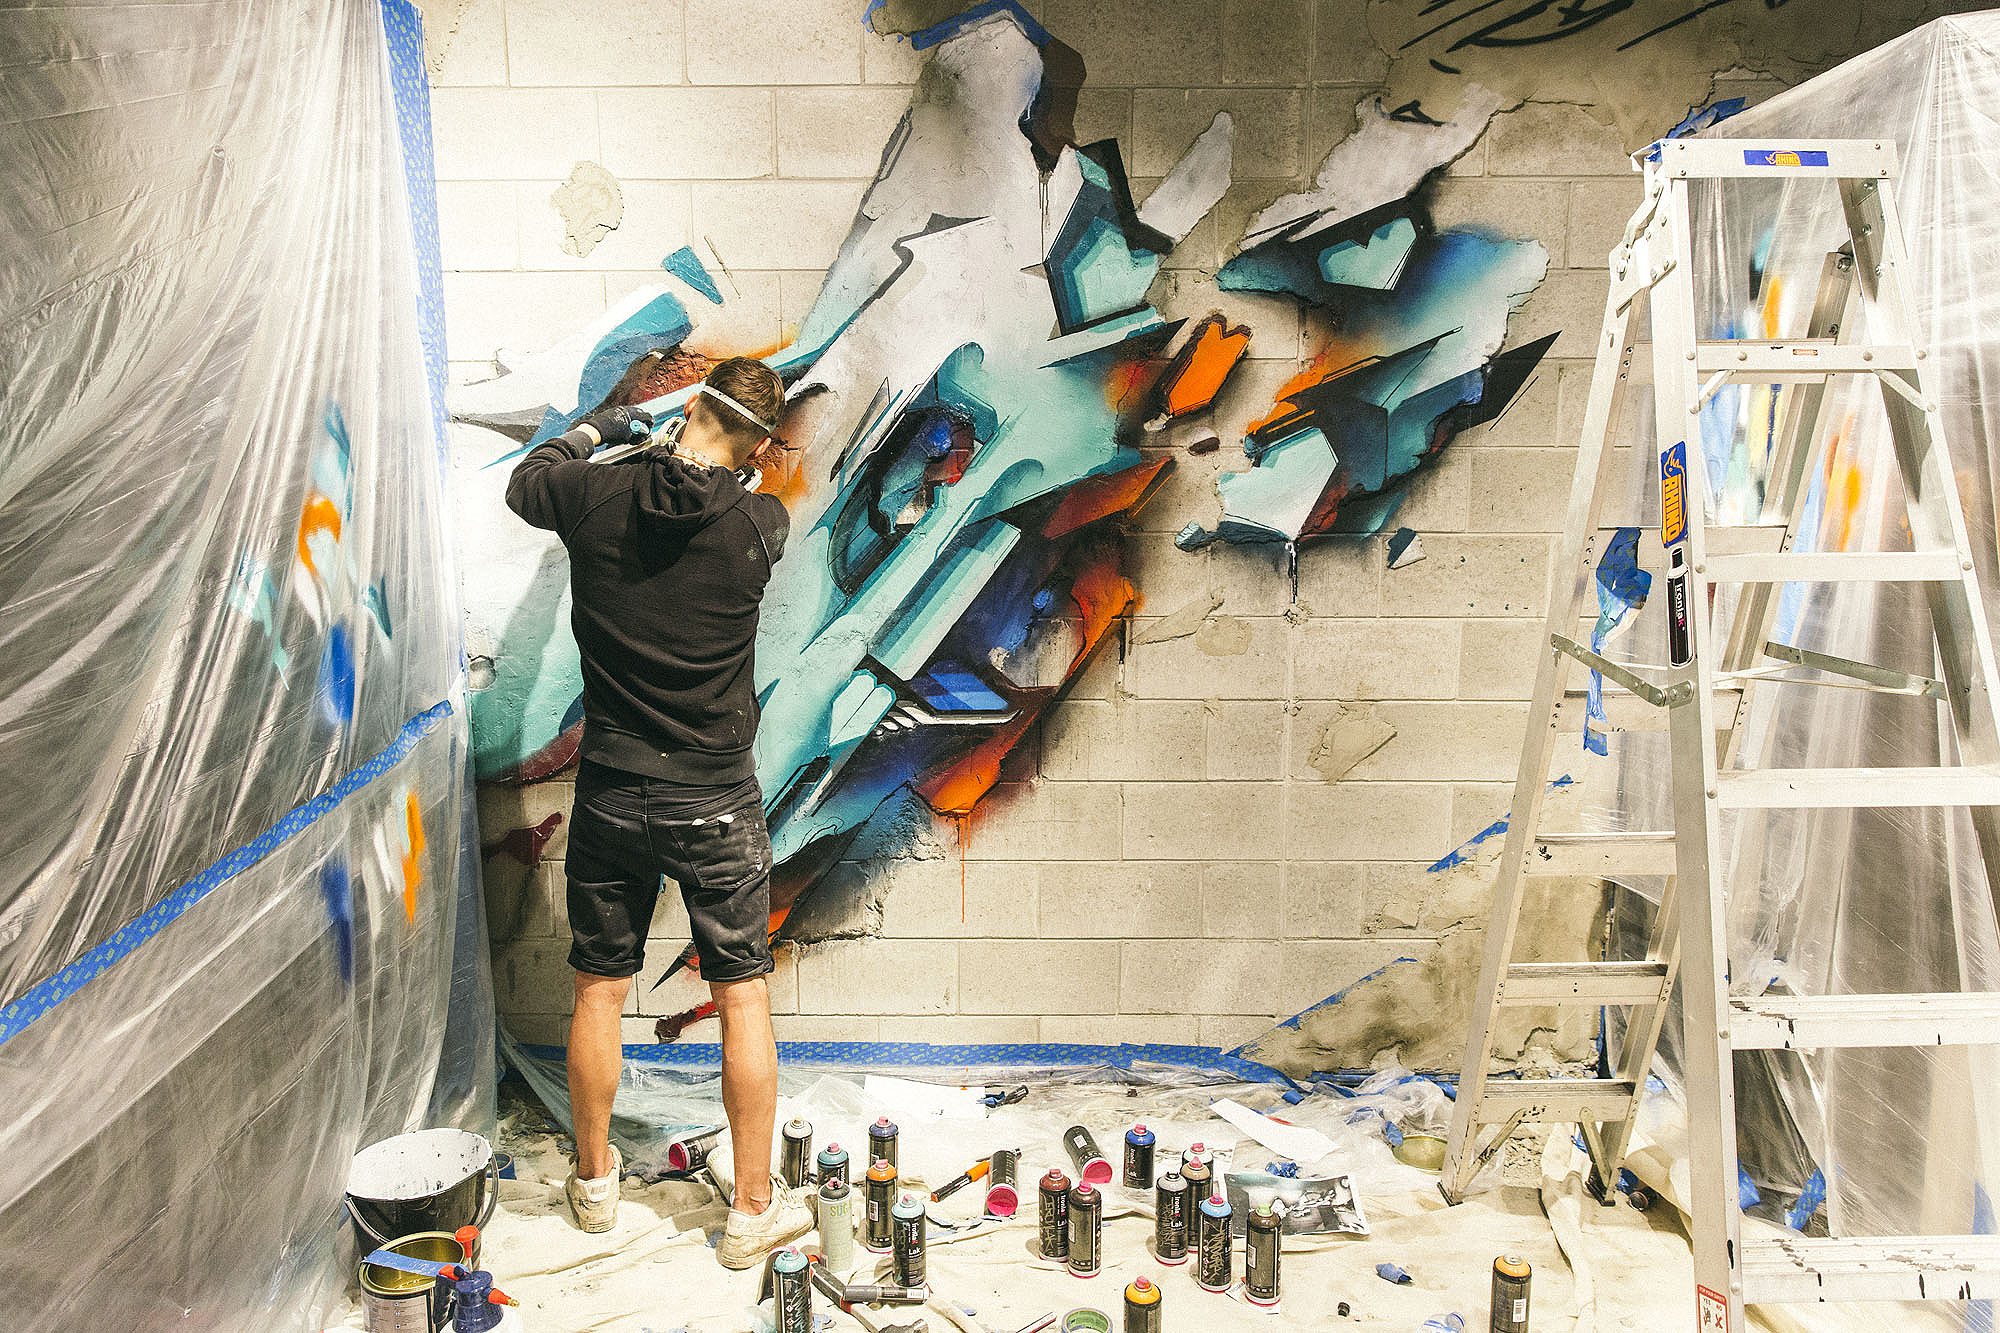 A work by Does - DOES-Ironlak-Art-&-Design-Chermside_LukeShirlaw_img_3676